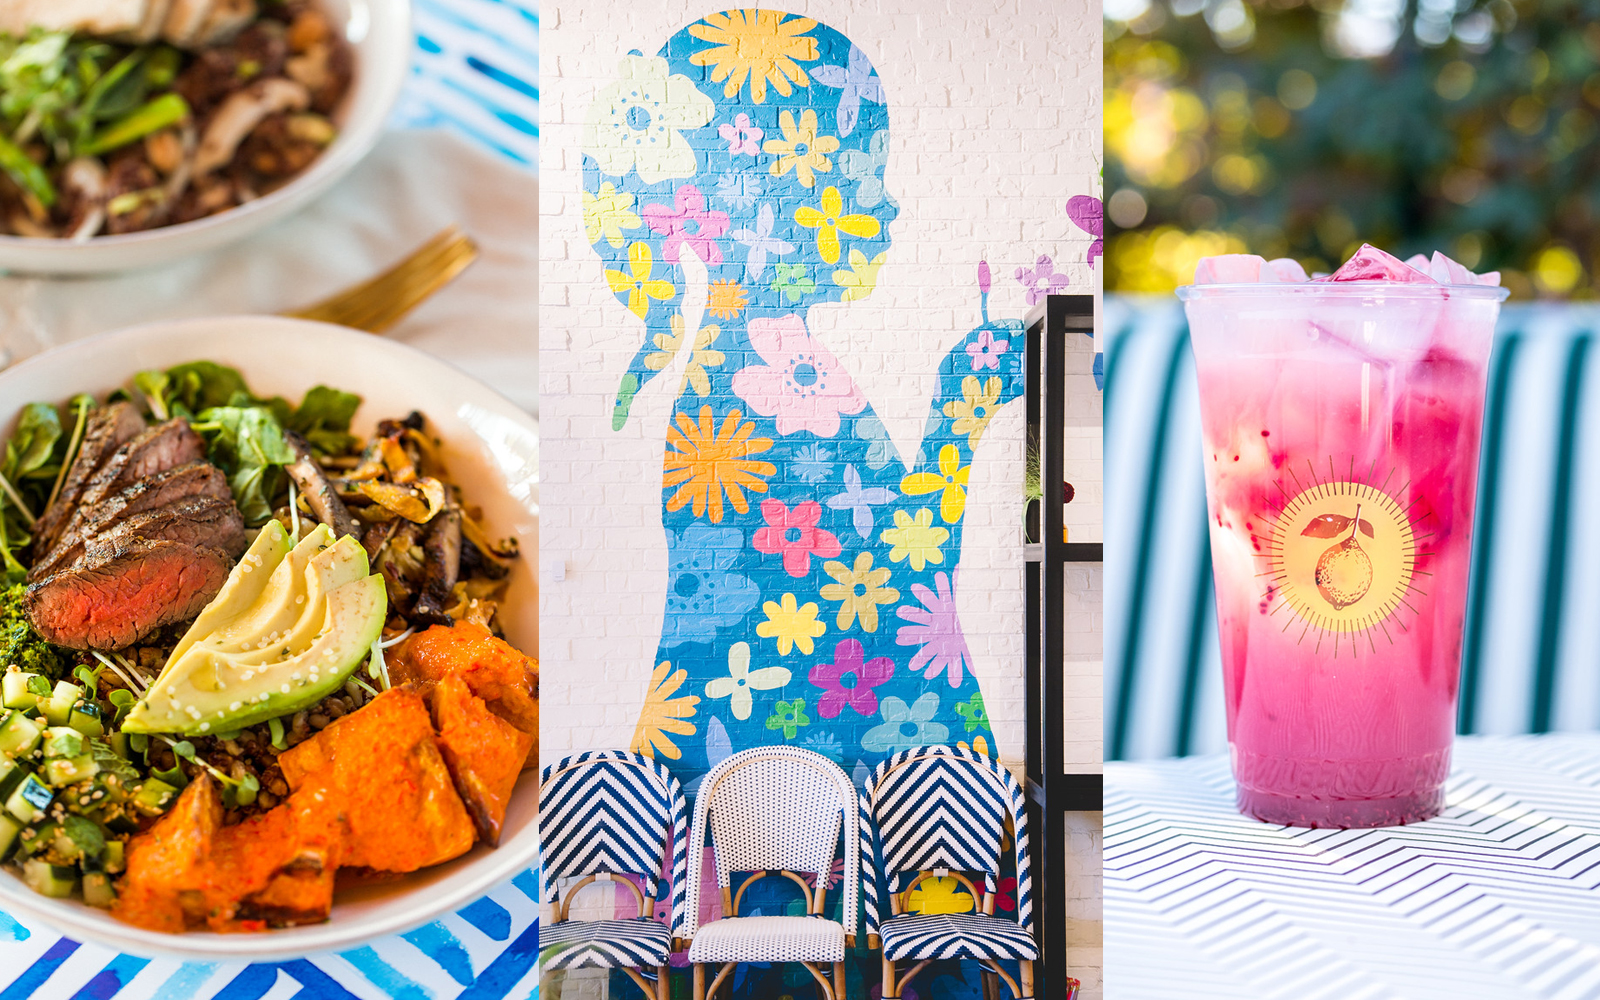 collage of steak and avocado bowl, mural of a floral girl silhouette, and bright pink iced drink